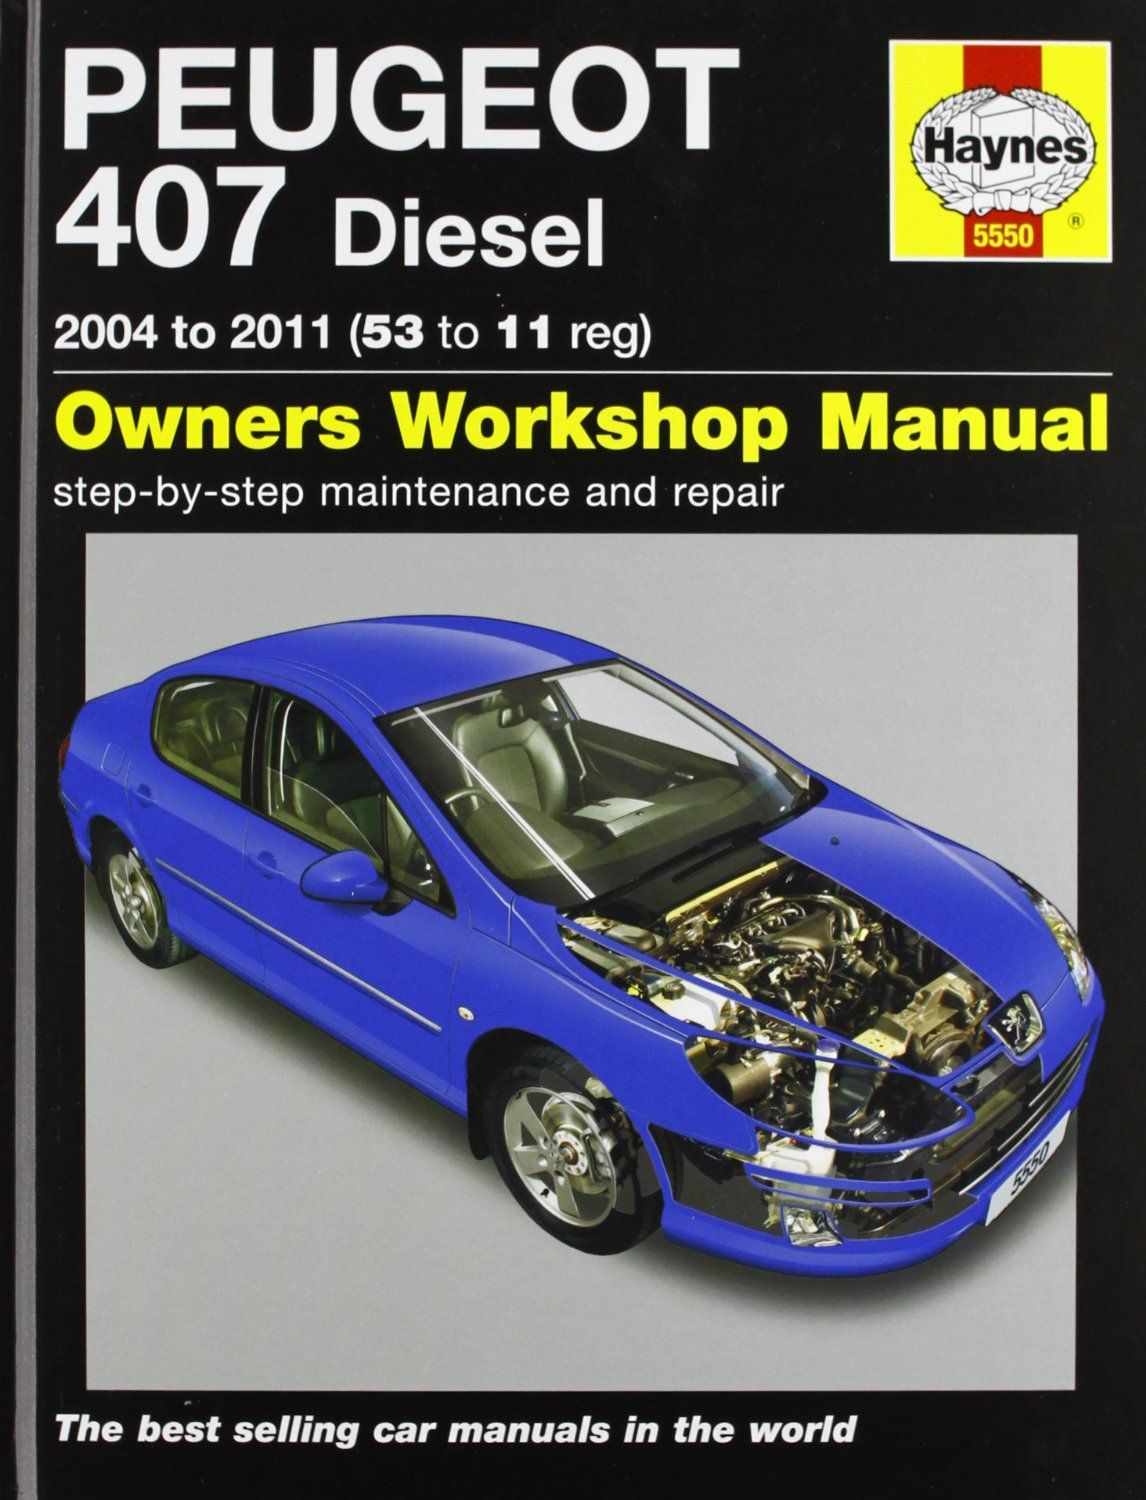 peugeot 407 diesel service and repair manual 2004 2011 haynes rh pinterest com car repair manual apps car repair manual free